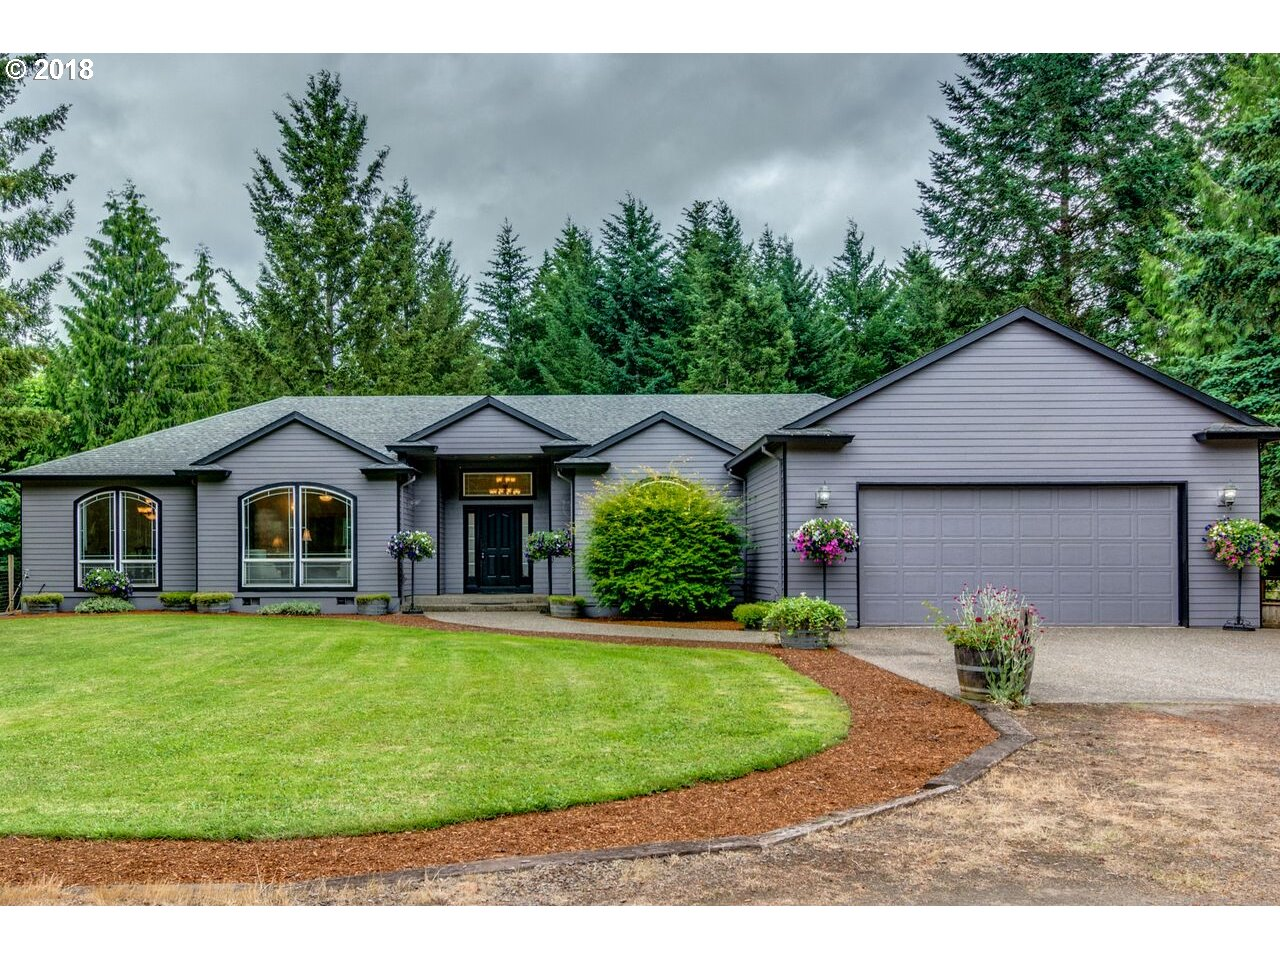 Amazing 1 level custom built home~ Perfect horse property! Secluded & private serene living fully fenced w/gated entrance, 36'X60' metal siding pole barn/shop wired/220, 48'X60' barn w/full covered lighted riding arena,(1)12'x24' foaling stall,(8)12'x12' stalls w/Noble stall fronts, 12'x48' overhead loft, 2 separate 12'x12' enclosed 3 sided shelters in pasture, In GPS type 16660 Thayer to arrive.